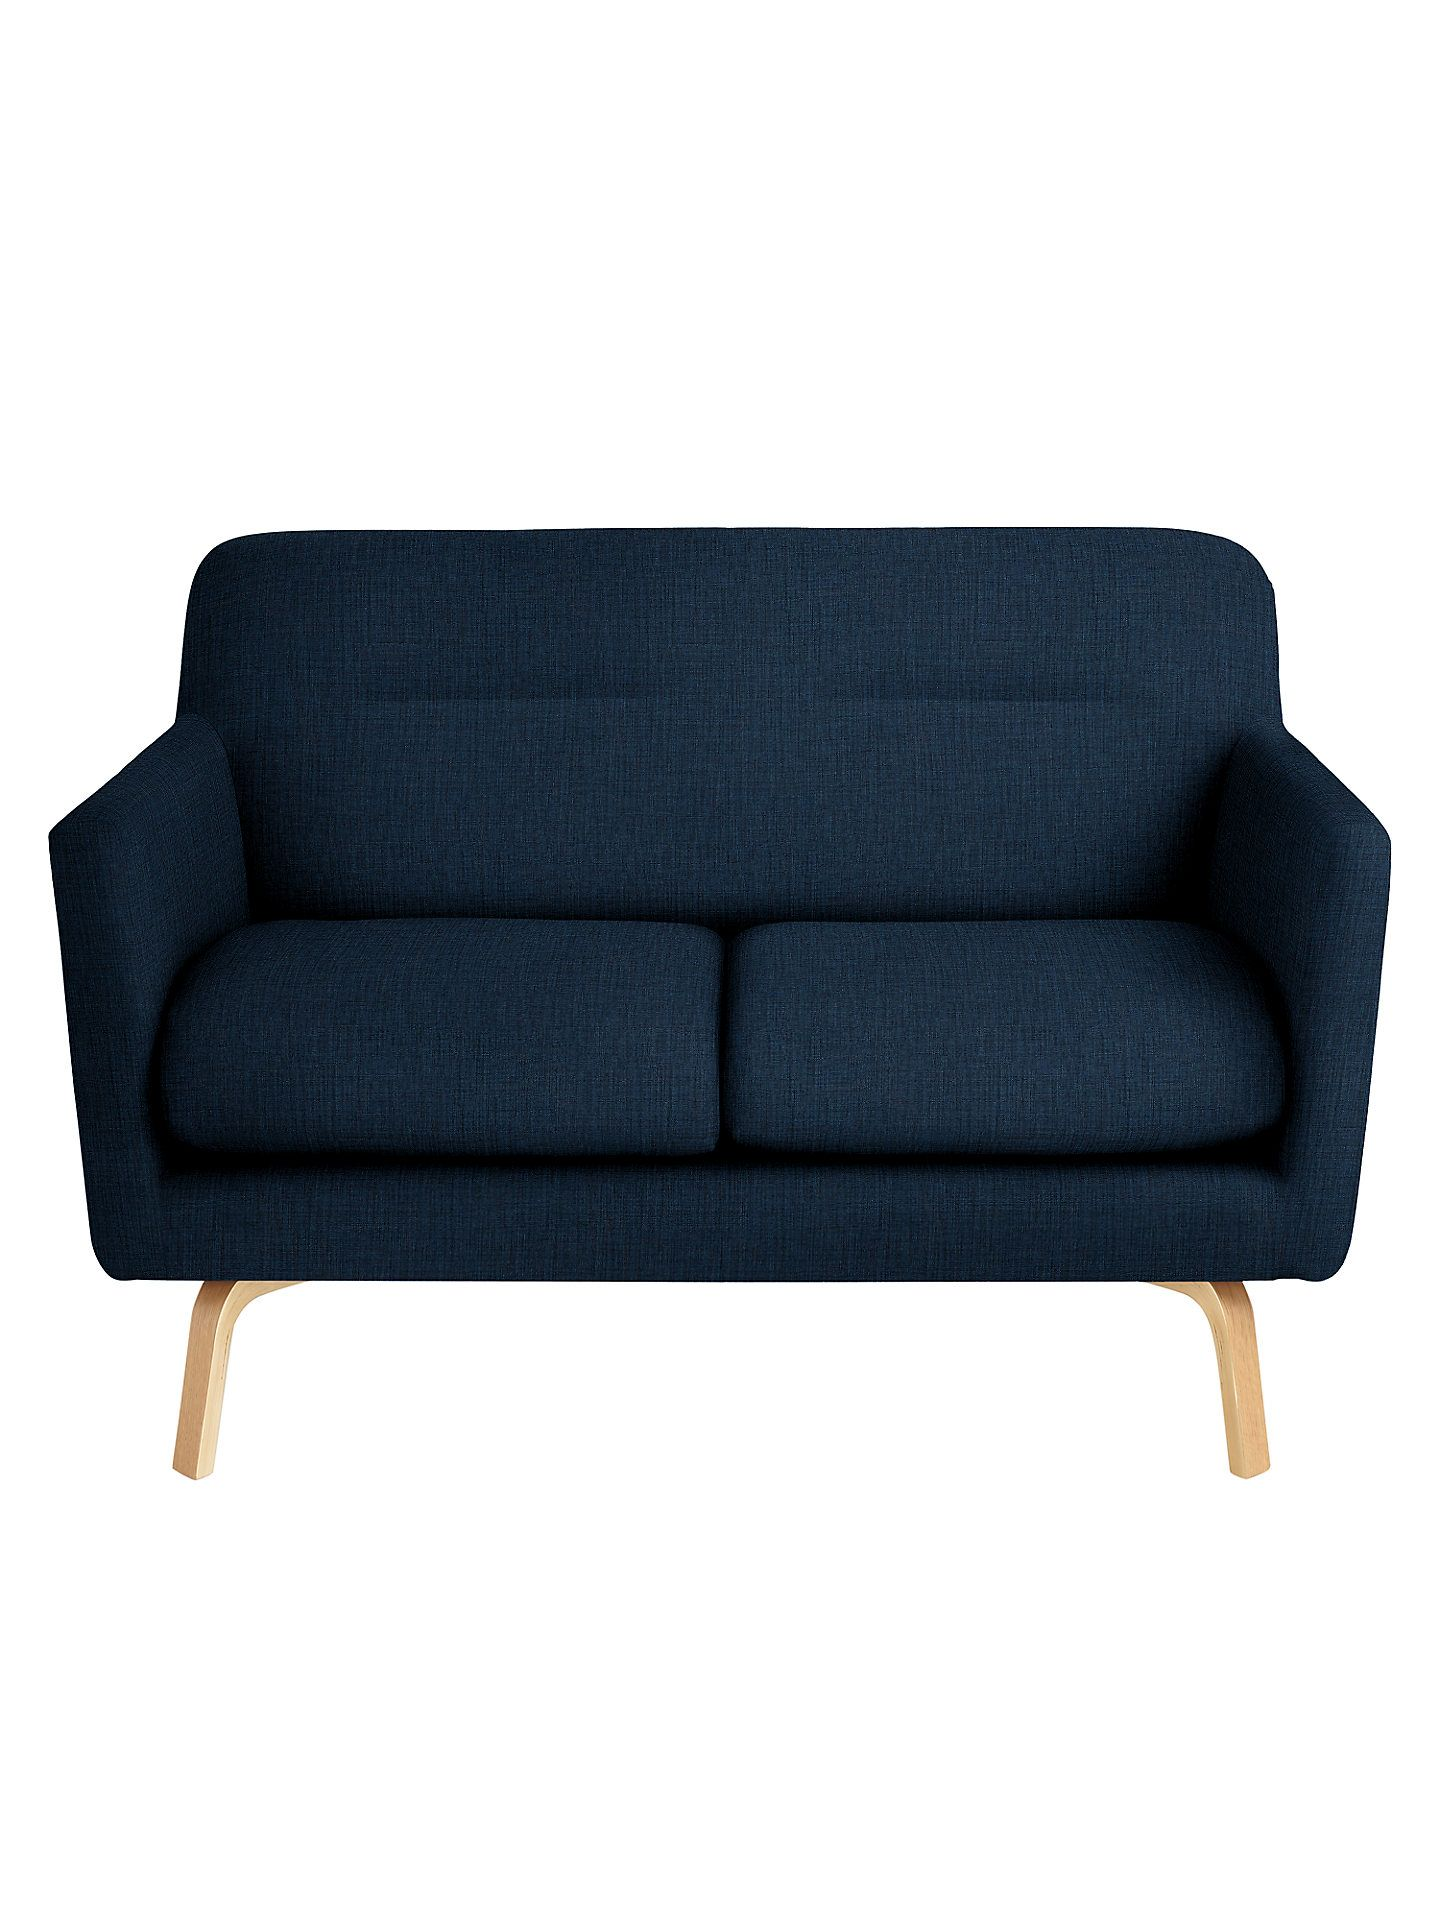 House By John Lewis Archie Ii Small 2 Seater Sofa At John Lewis Partners Small Sofa Seater Sofa Simple Couch